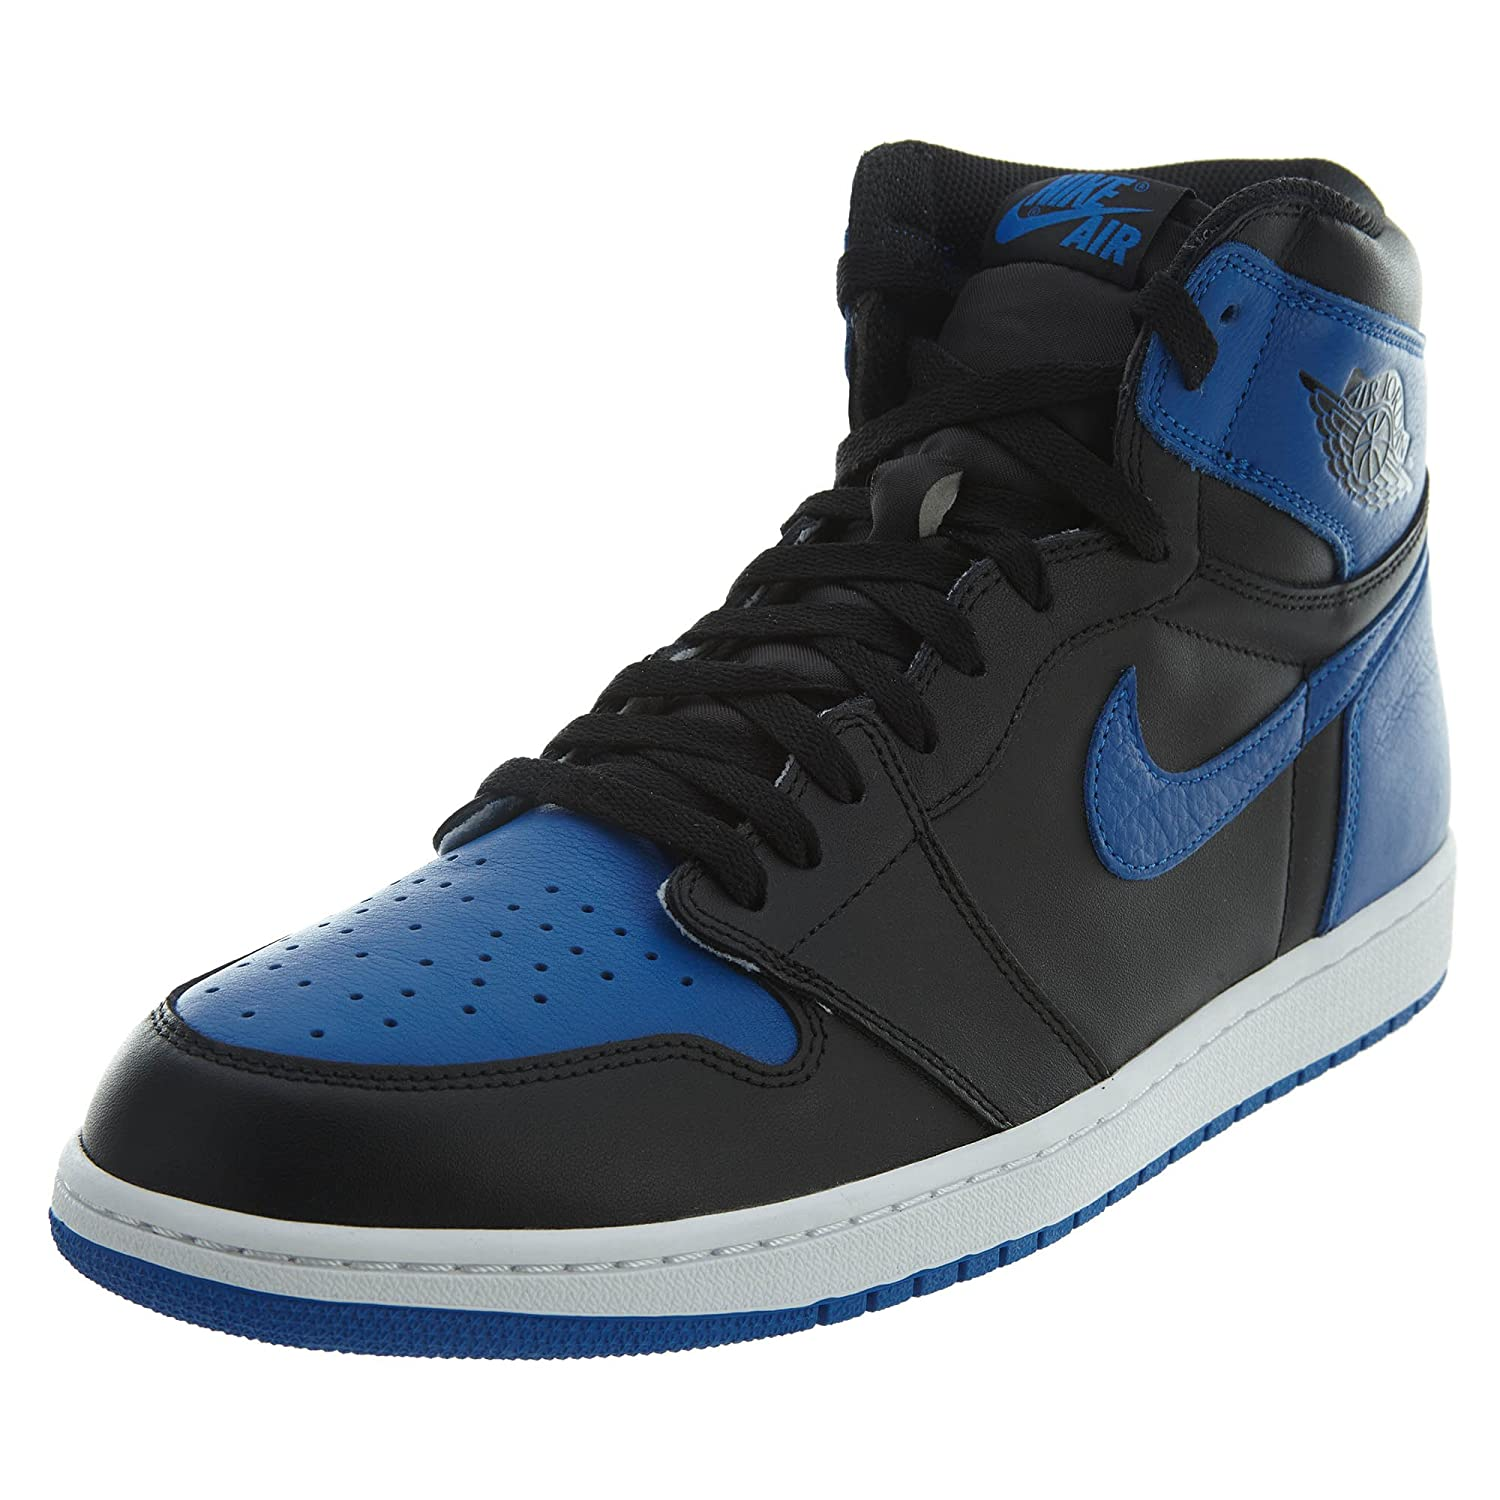 cheaper e75e7 0b4e3 Amazon.com   Air Jordan 1 Retro High OG